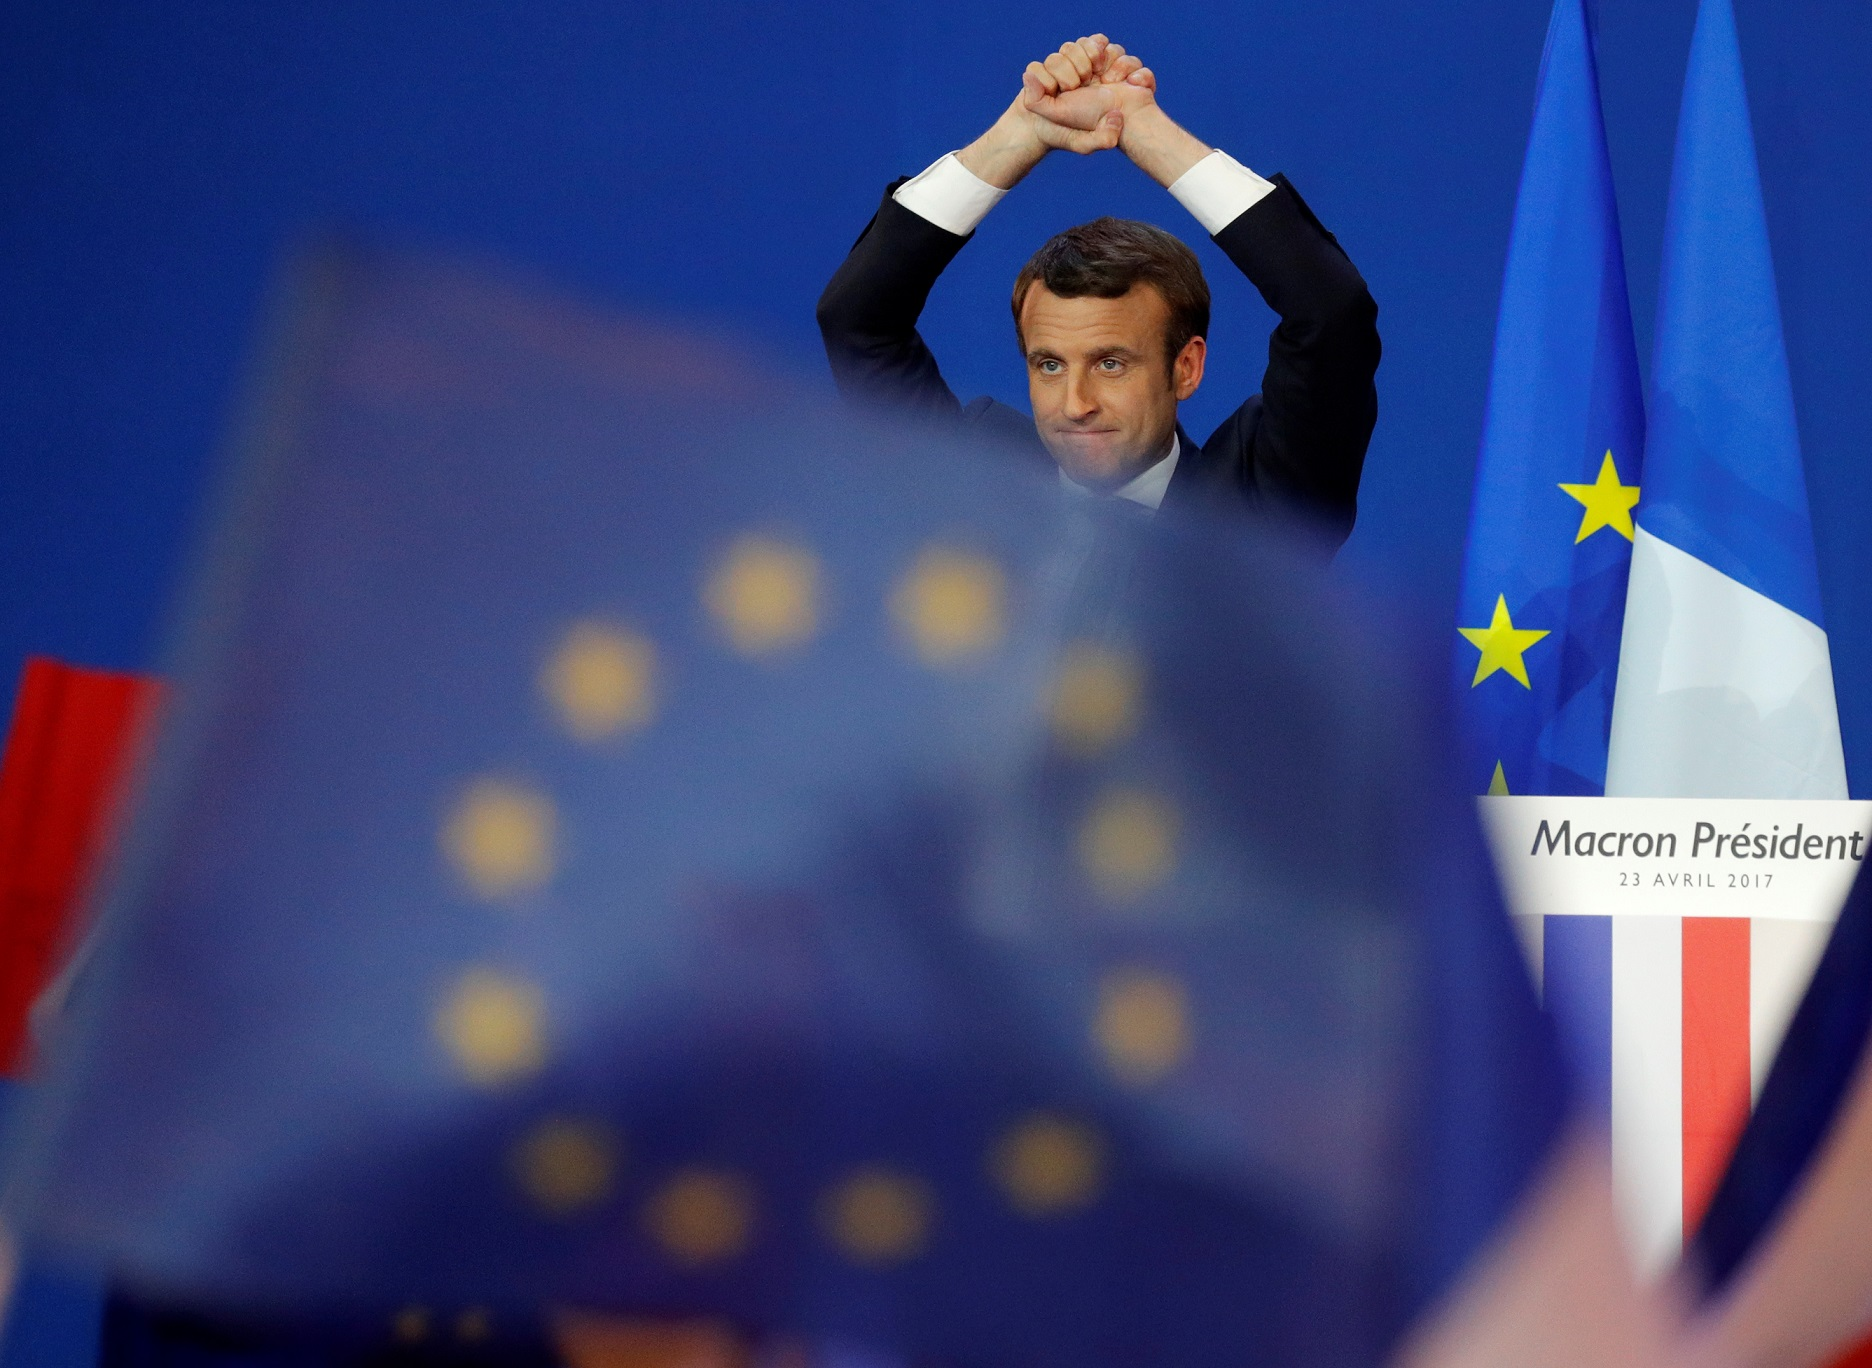 Emmanuel Macron, head of the political movement En Marche !, or Onwards !, and candidate for the 2017 French presidential election, celebrates on stage after partial results in the first round of 2017 French presidential election in Paris